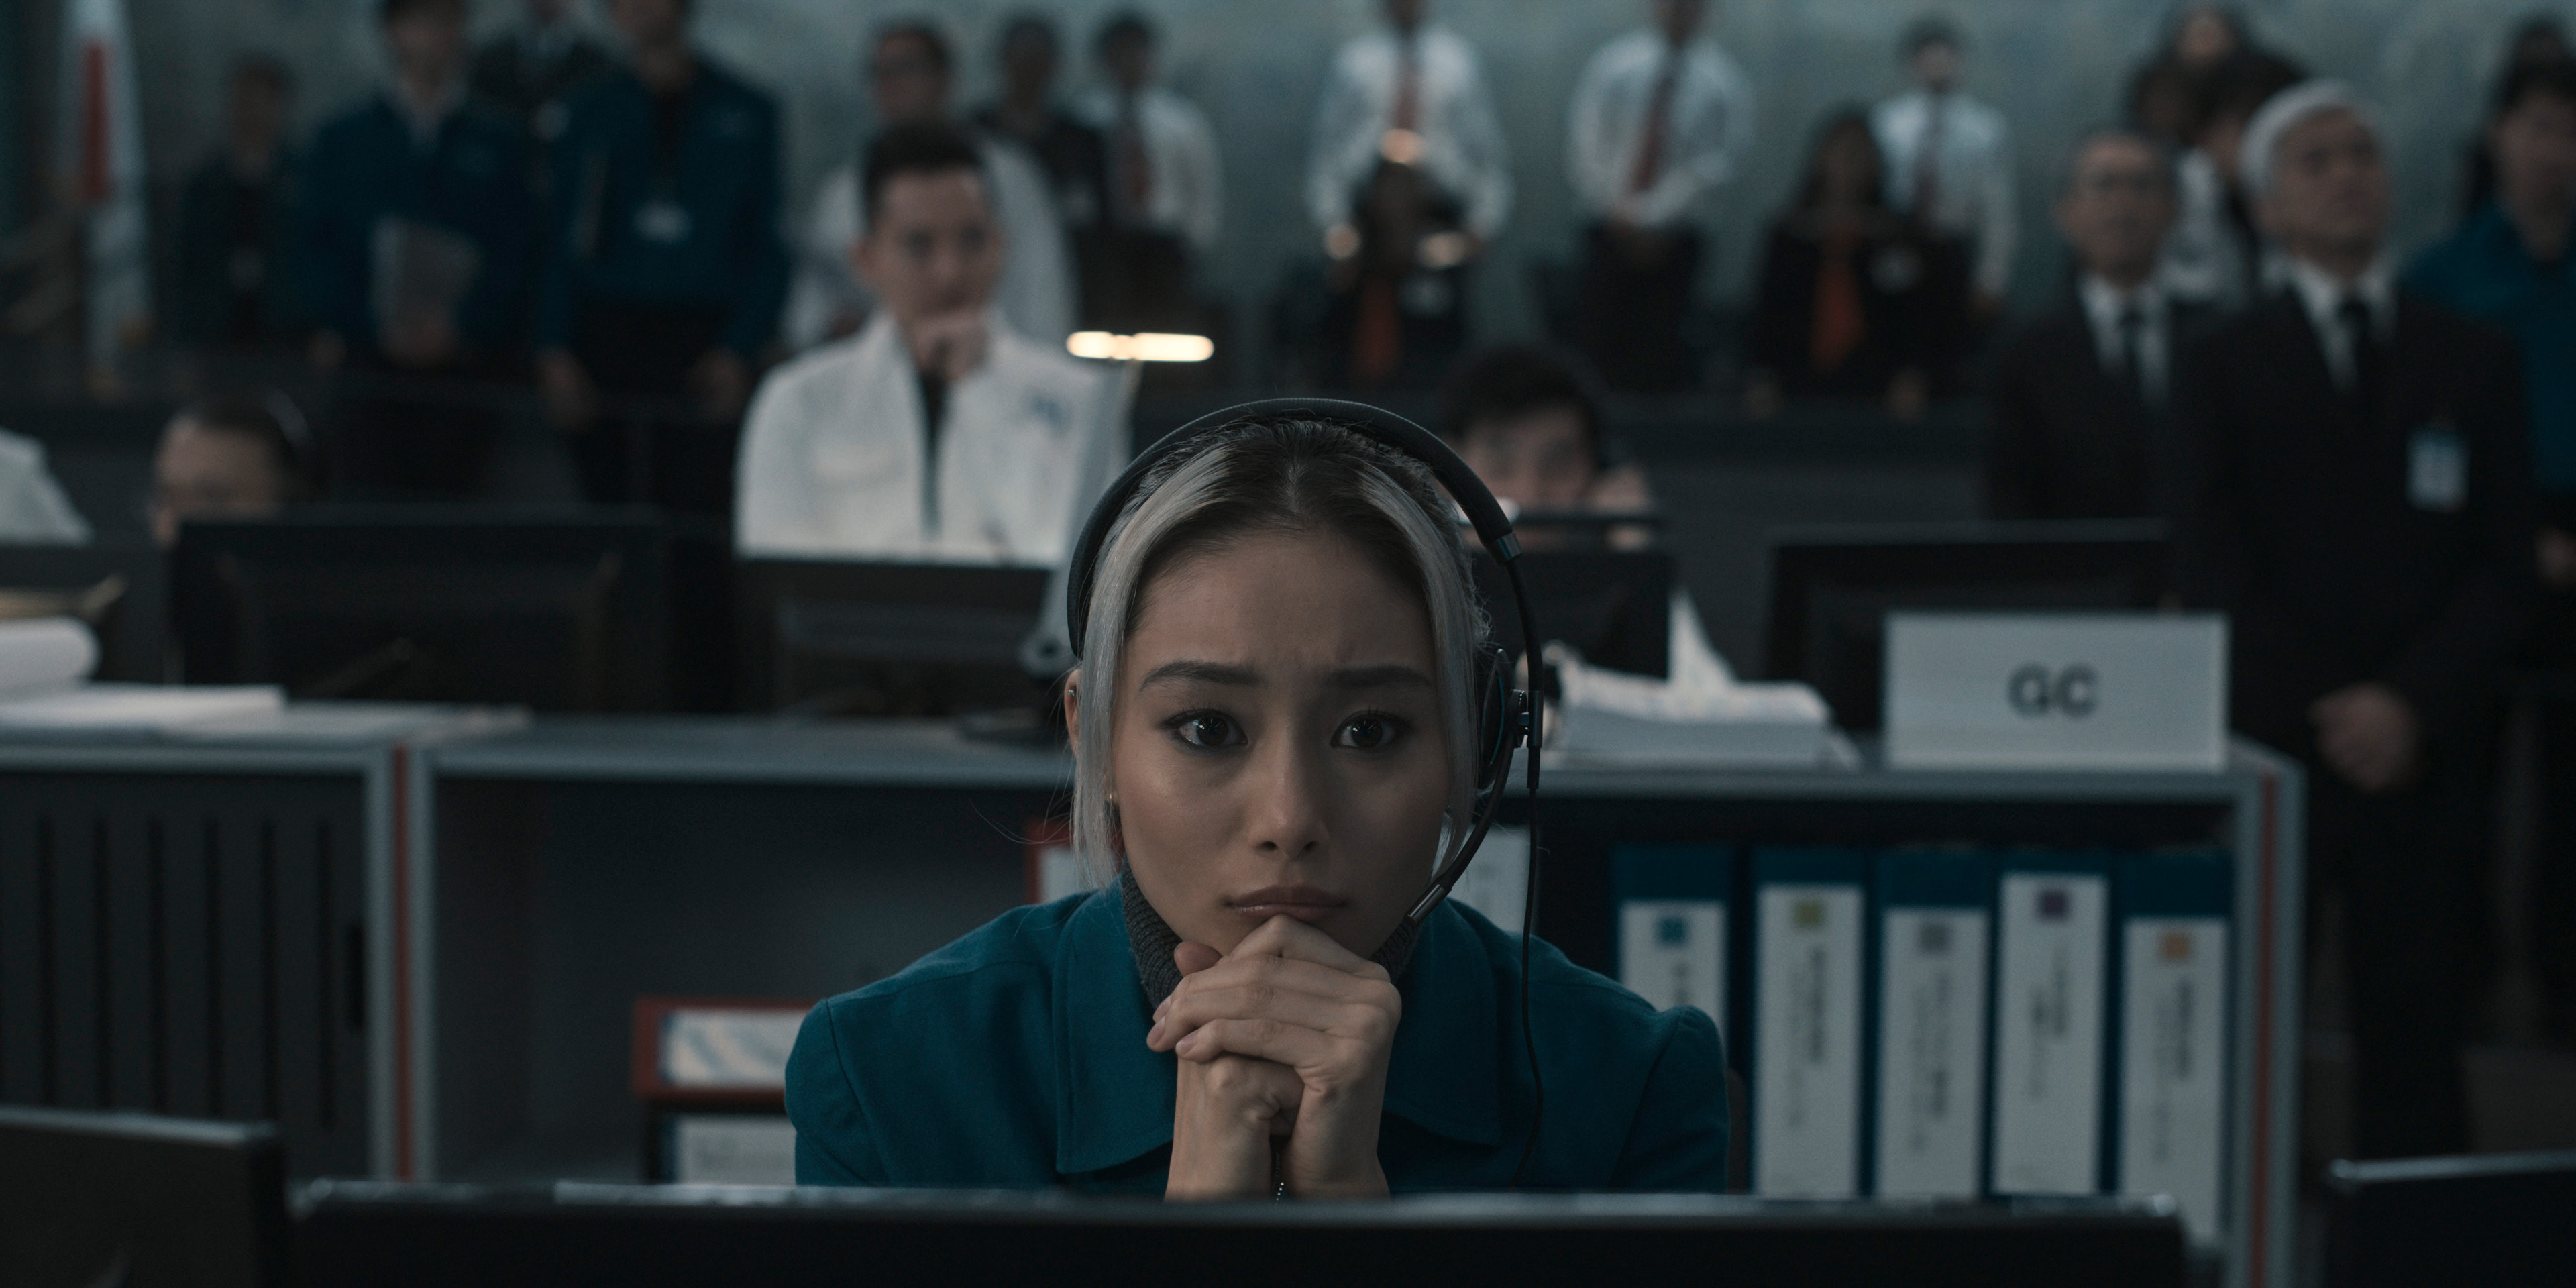 Mitsuki Yamato, a control room employee in the Japanese space program, sits nervously at her station in the Apple TV Plus show Invasion.